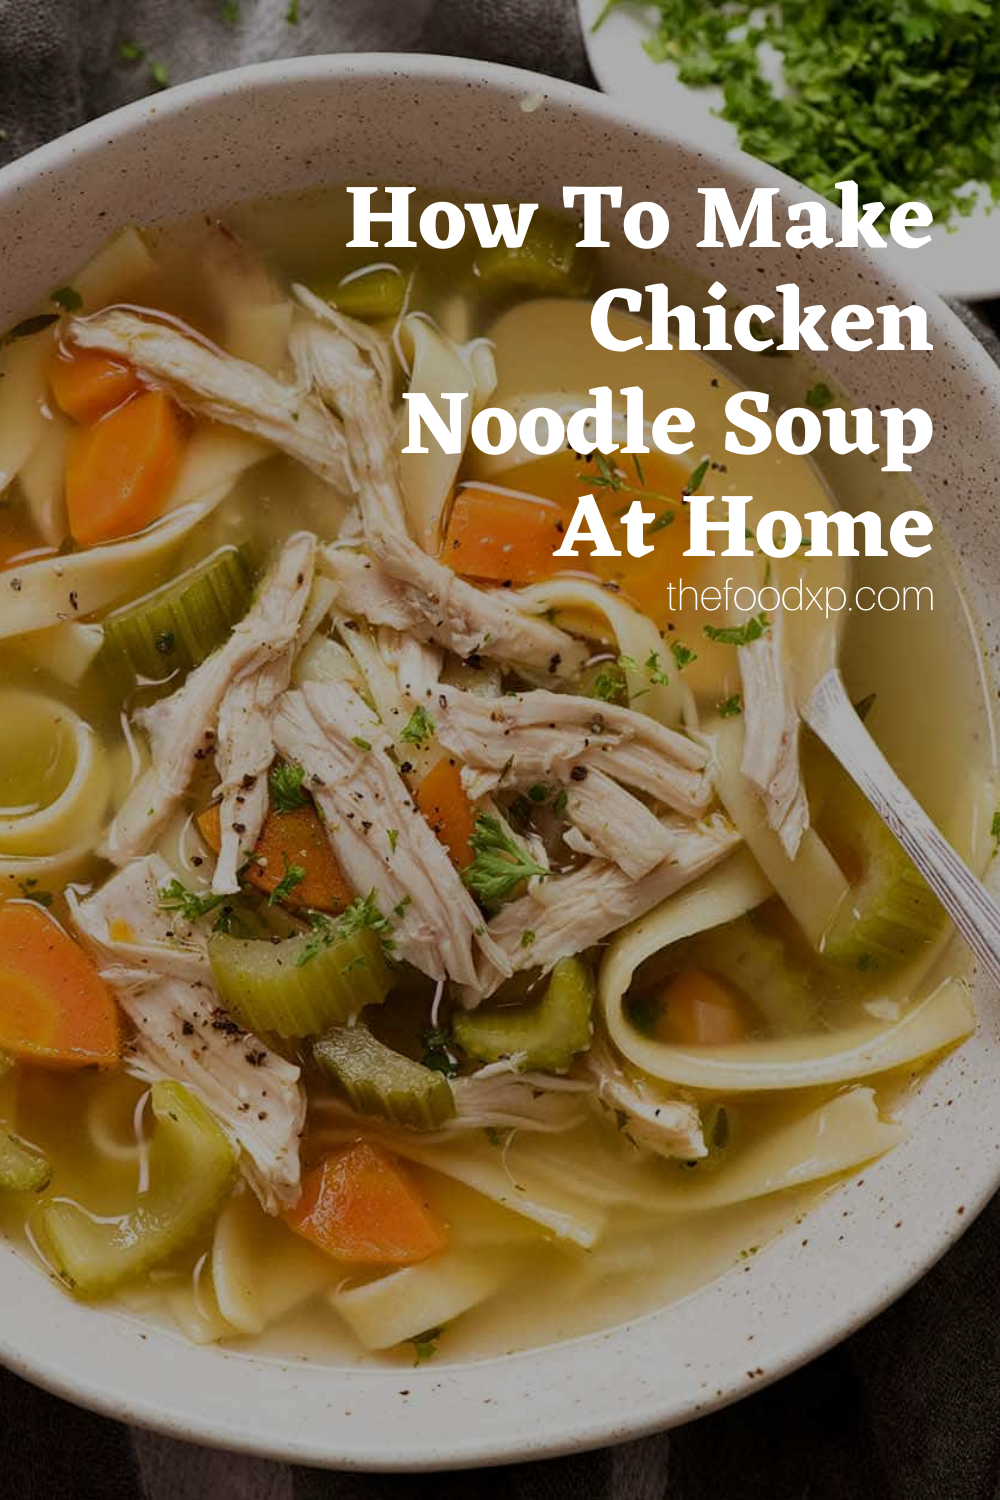 Homemade Chicken Noodle Soup Thefoodxp Recipe In 2021 Chicken Noodle Soup Soup Recipes Chicken Noodle Chicken Noodle